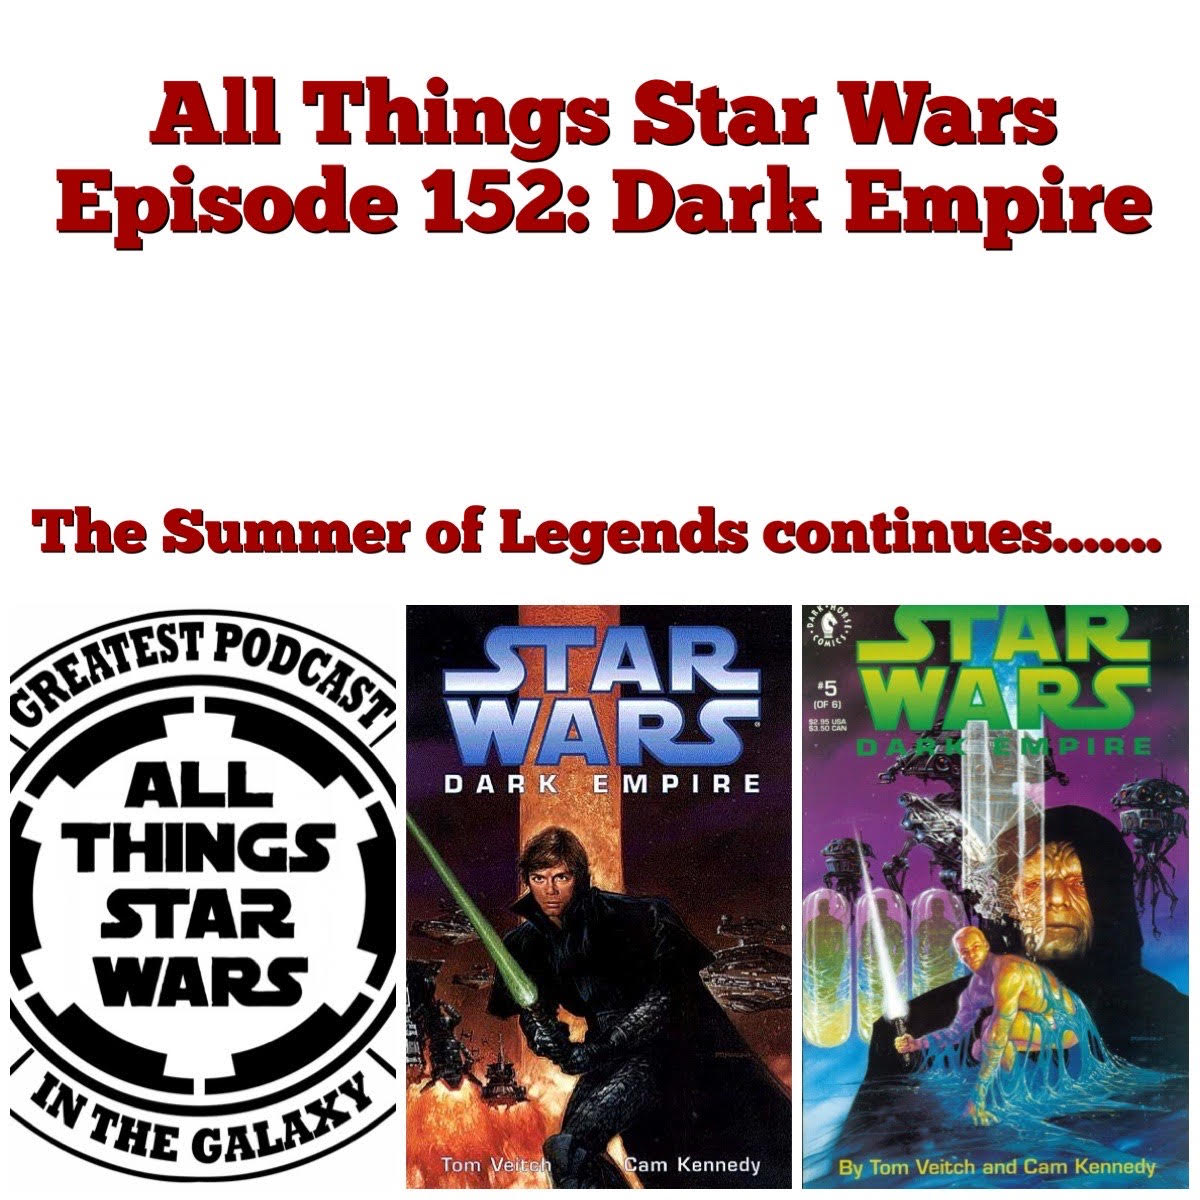 Episode 152 - Dark Empire